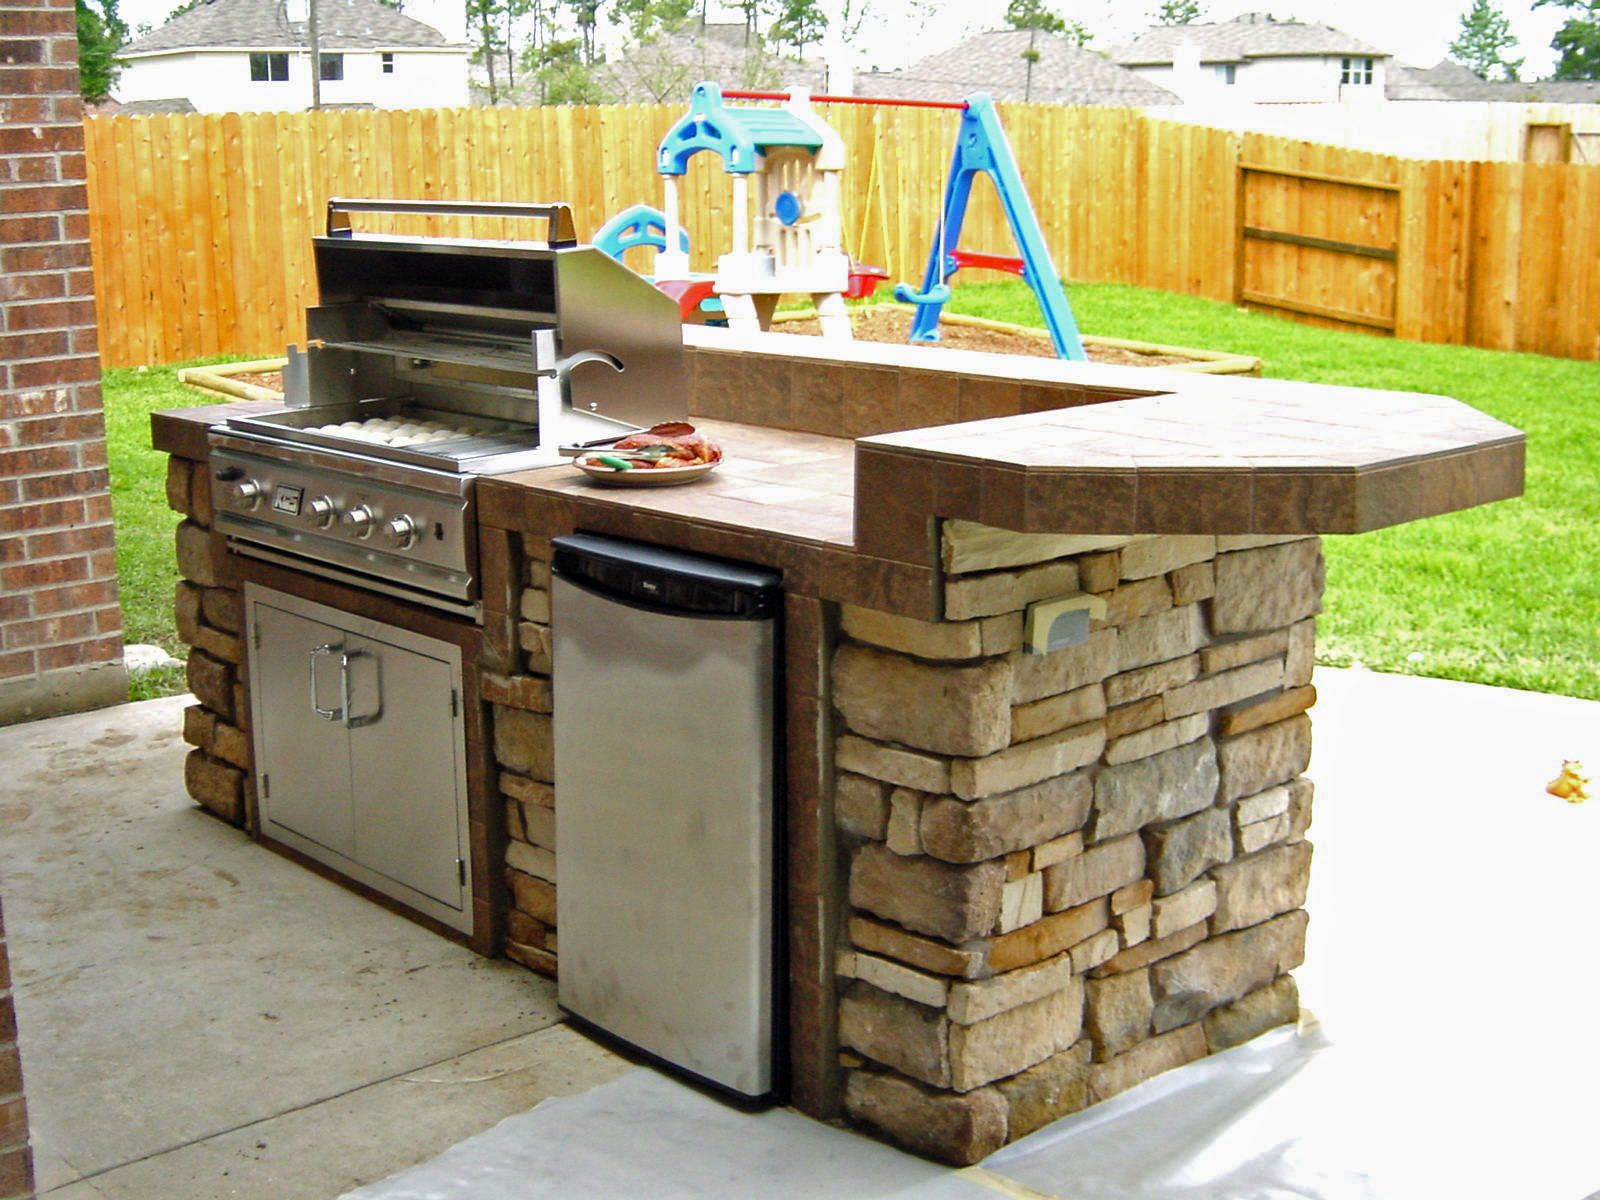 Outdoor Grill Design Ideas backyard kitchen ideas decor ideas ahoustoncom kitchen backyard design outdoor grill design ideas Outdoor